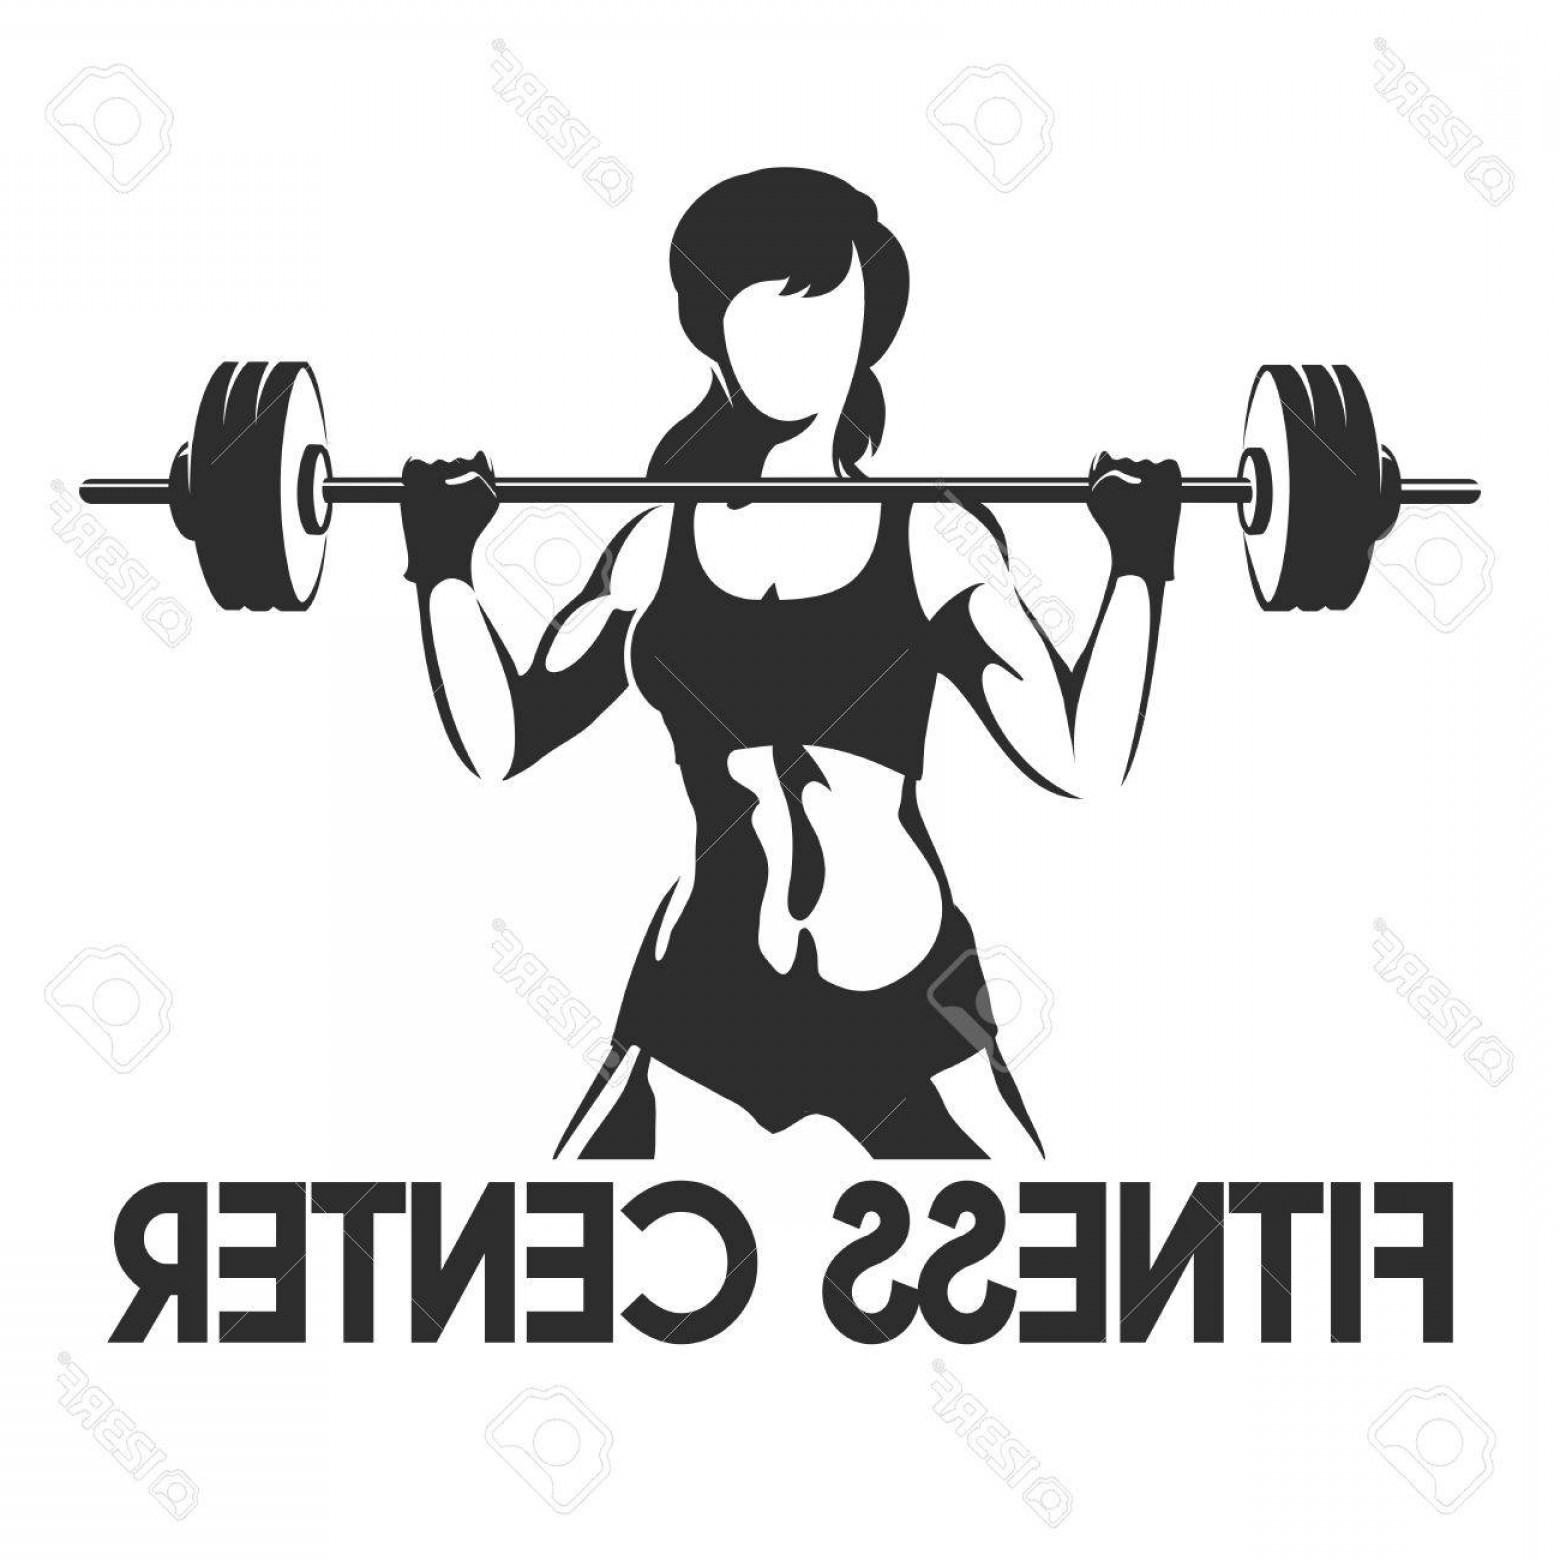 Vector Barbell Press: Photostock Vector Fitness Center Or Gym Emblem Sporty Woman Silhouette With Barbell Power Lifting Exercises Concept